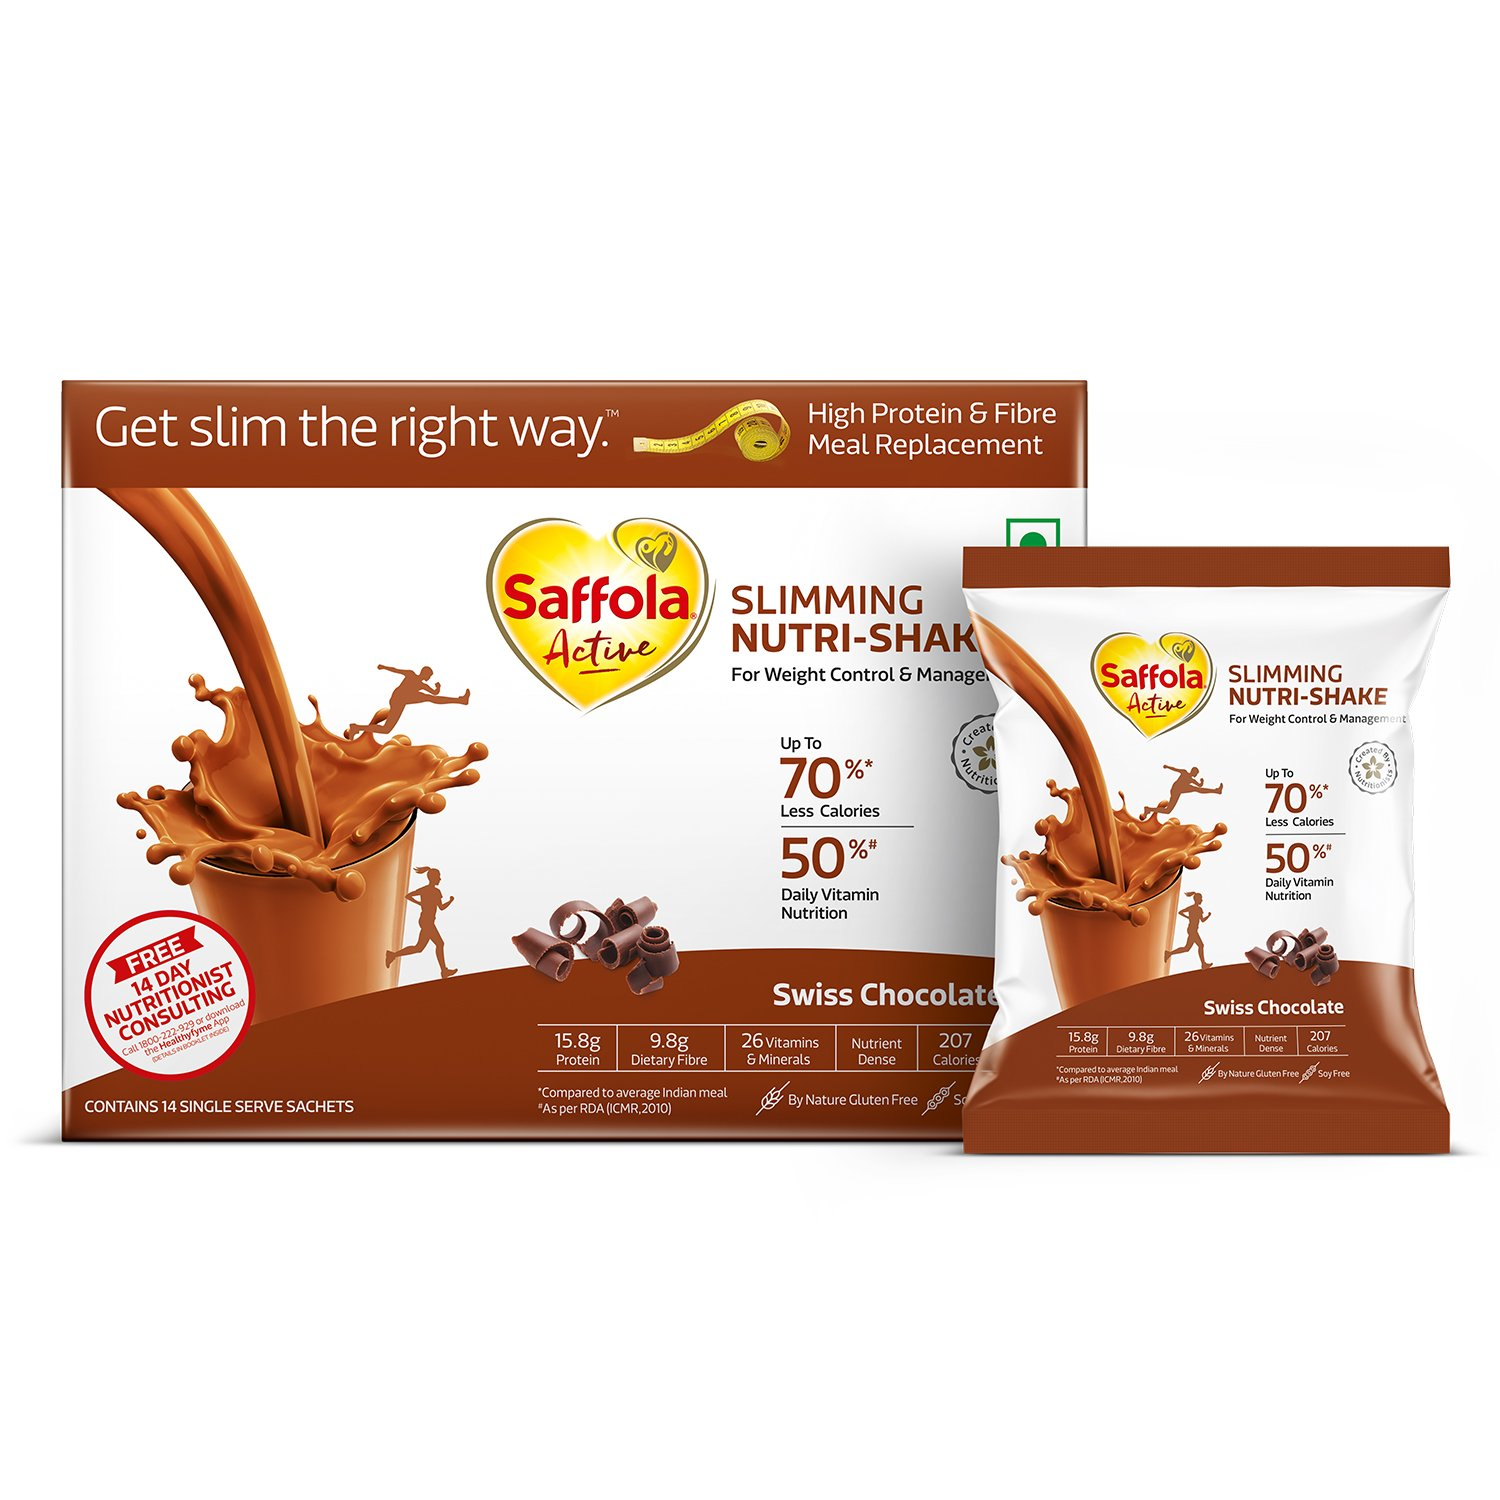 Saffola Active Slimming Nutri-Shake - 50 g (Pack of 14, Swiss Chocolate)